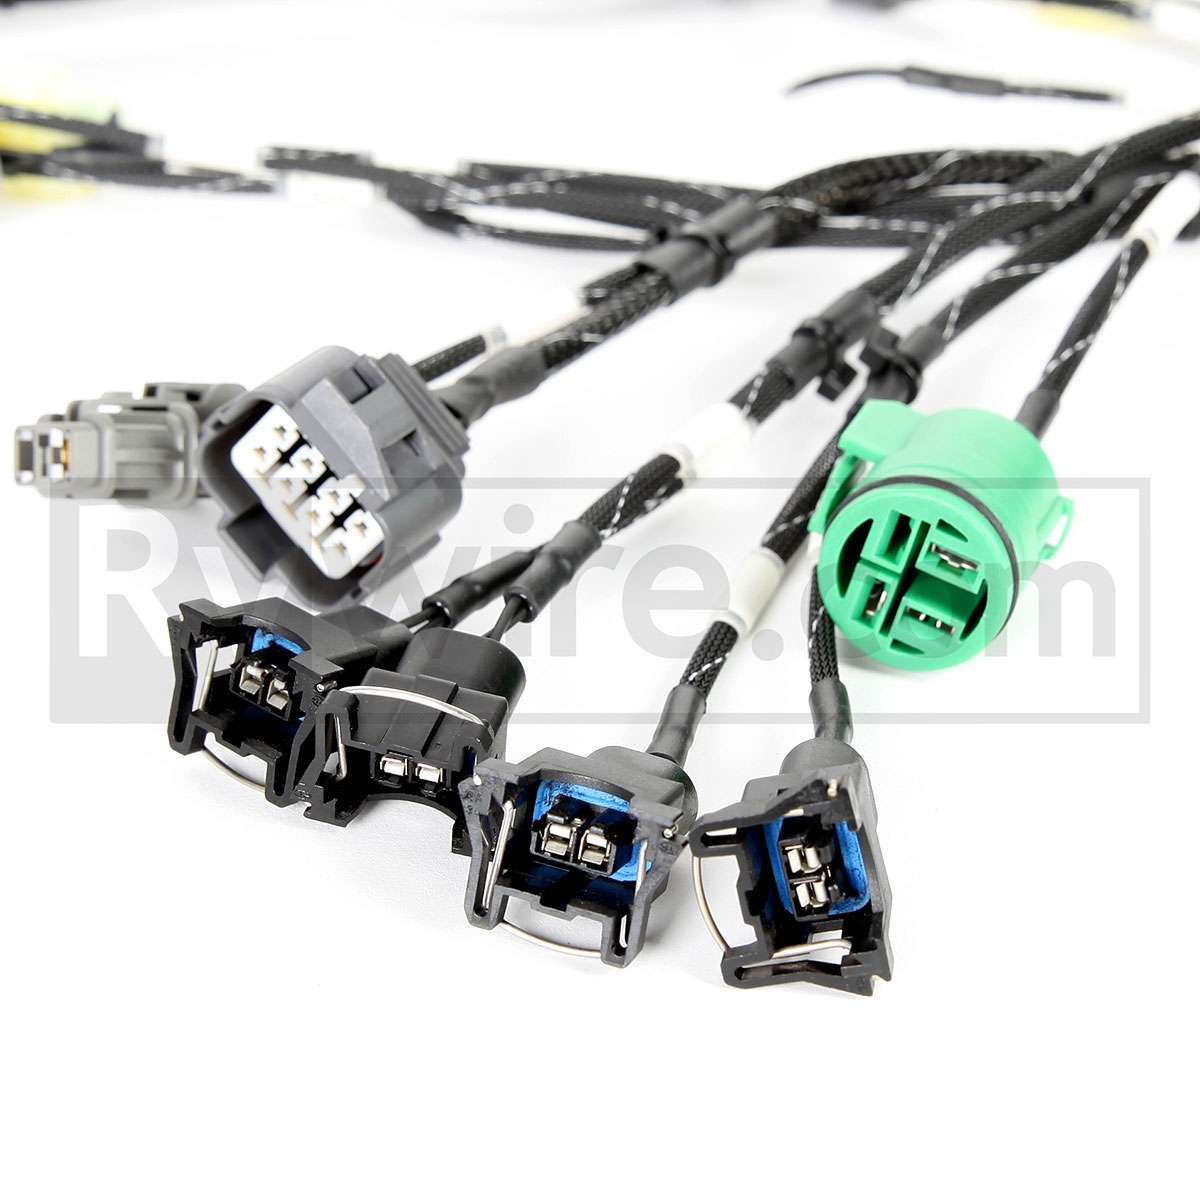 B1 Base 4?1403534211 rywire com budget d & b series tucked engine harness what gauge wire for engine harness at arjmand.co